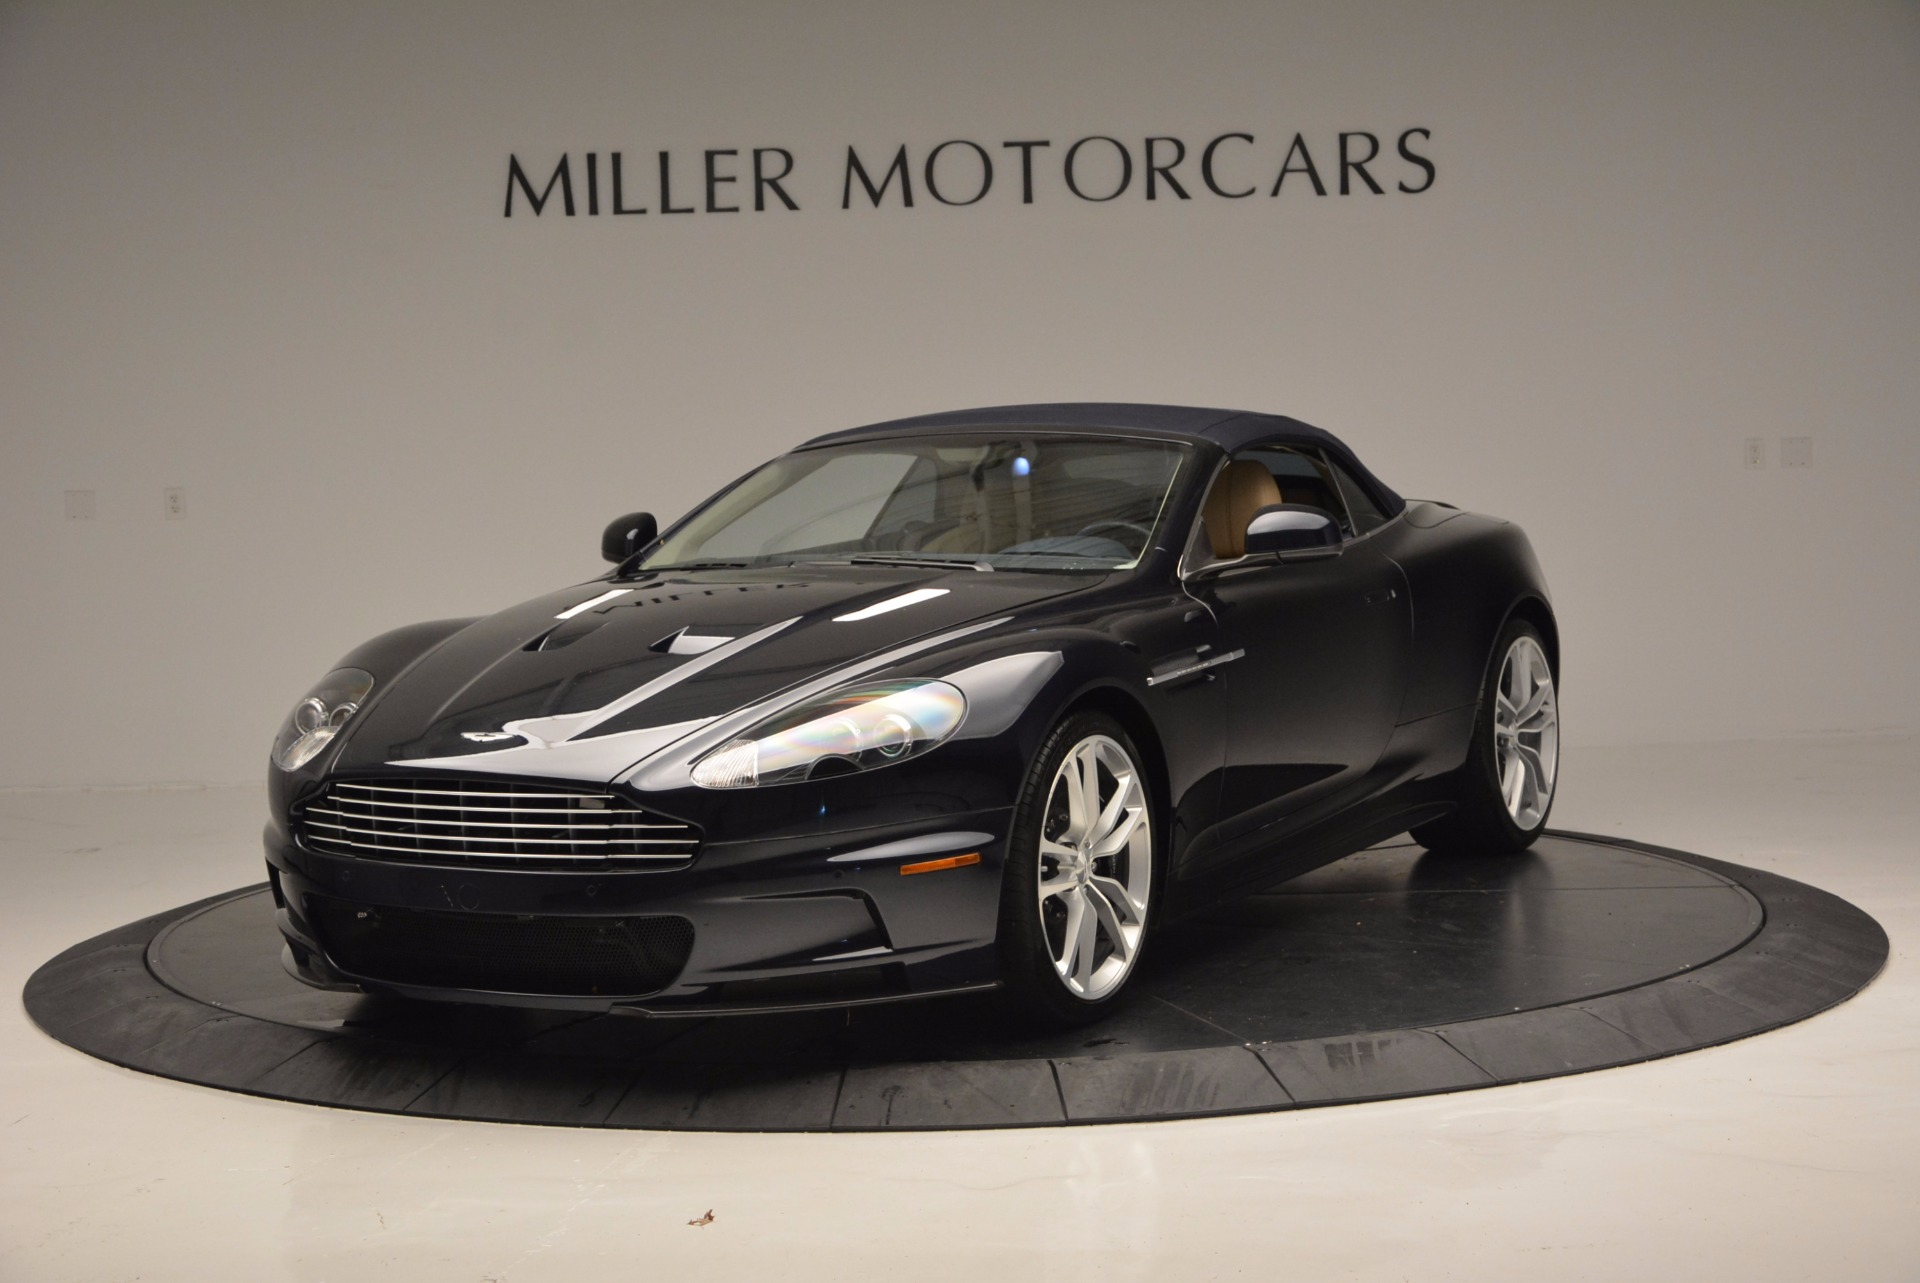 Used 2012 Aston Martin DBS Volante For Sale In Westport, CT 644_p13